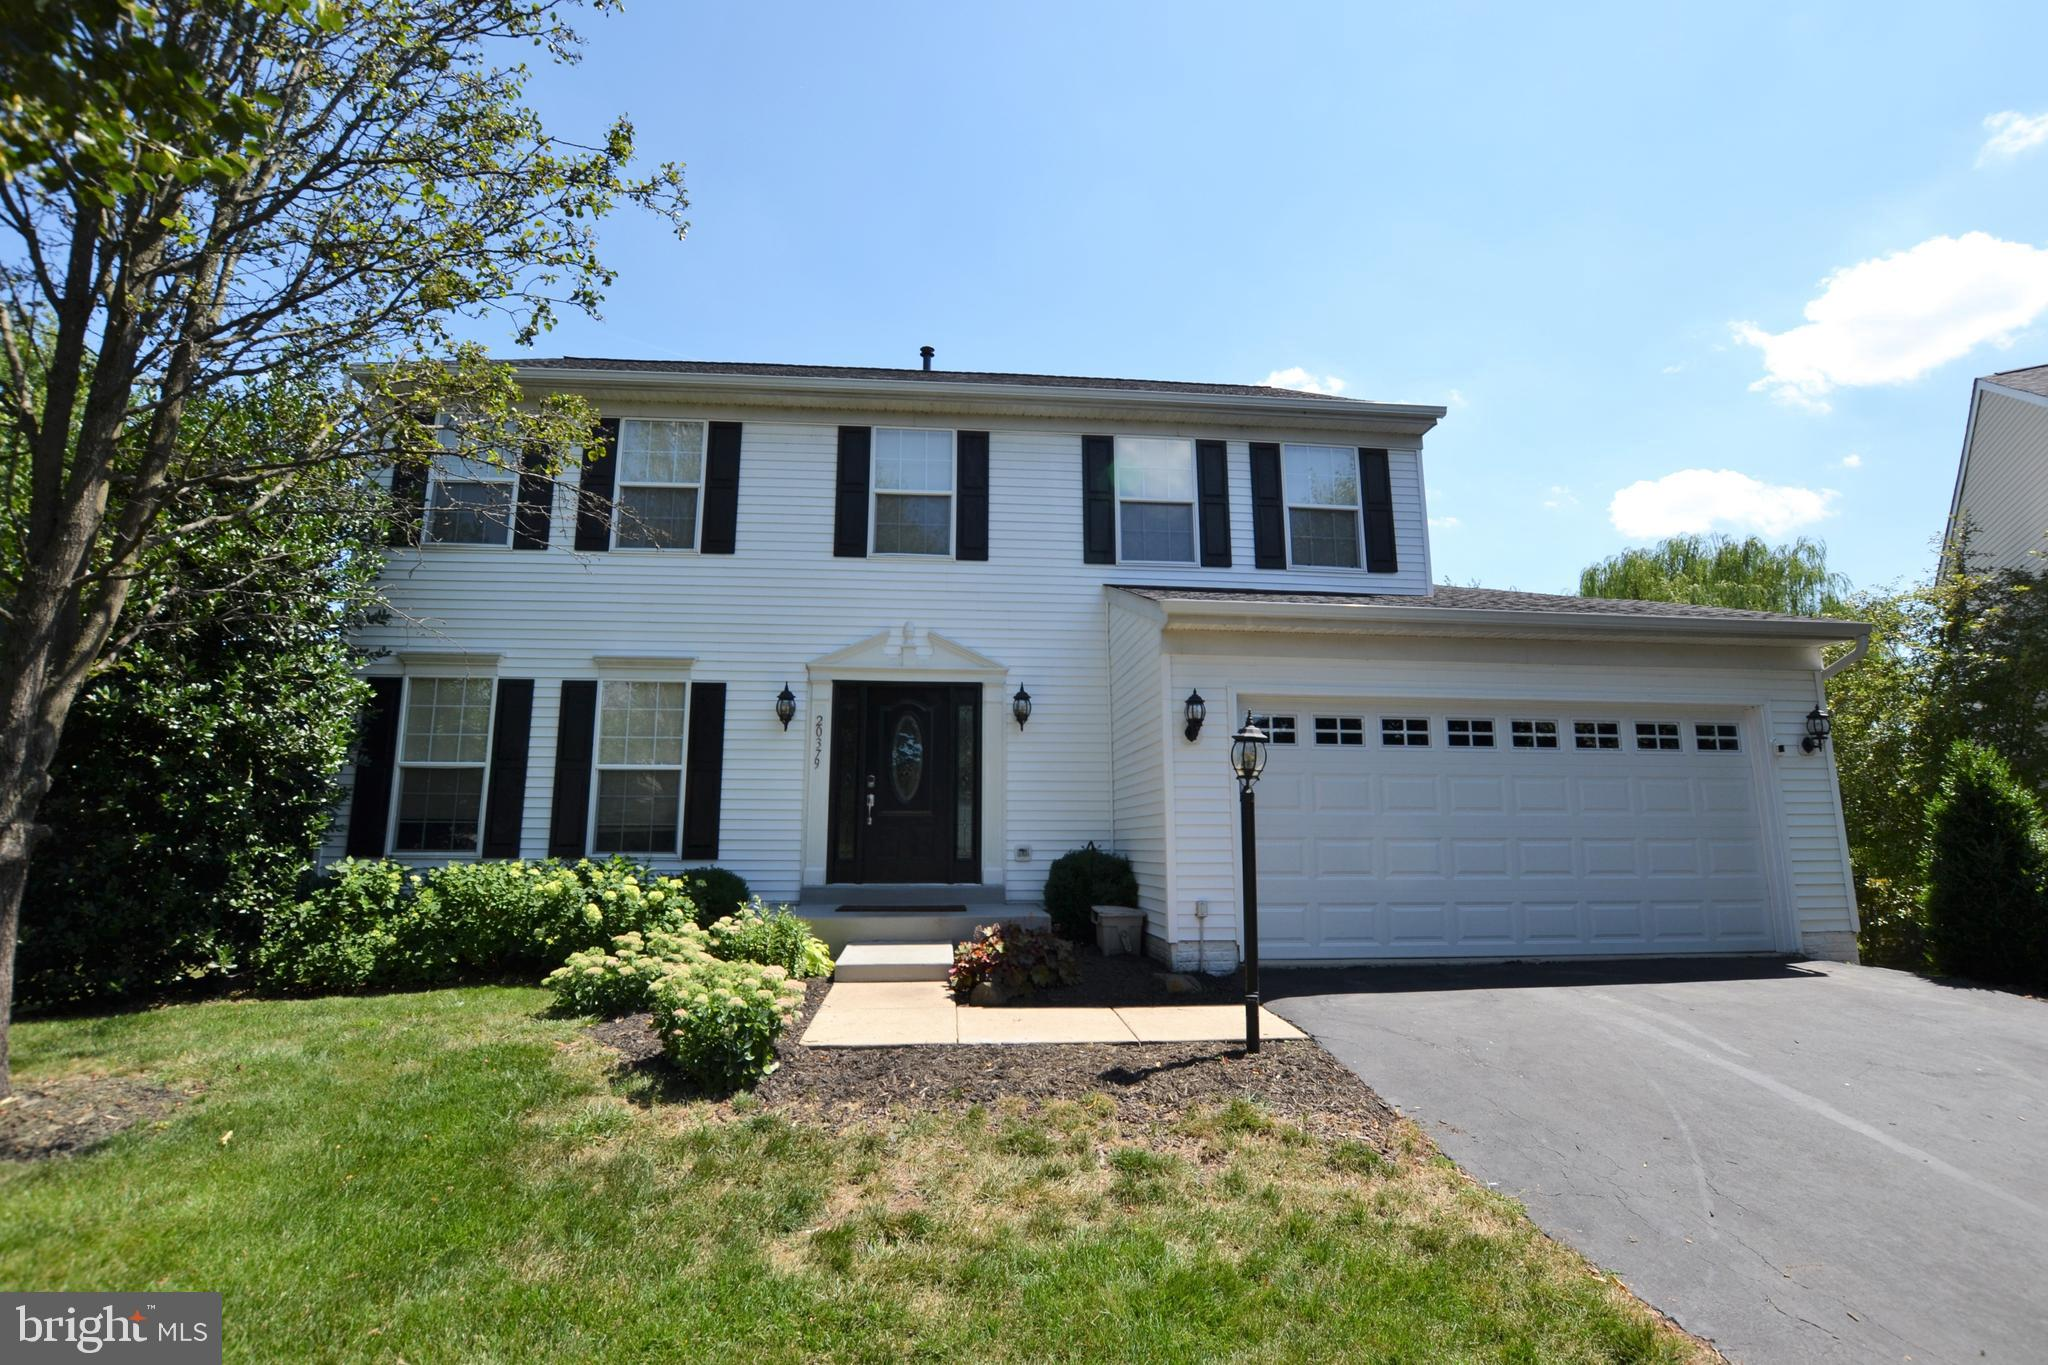 20147 4 Bedroom Home For Sale